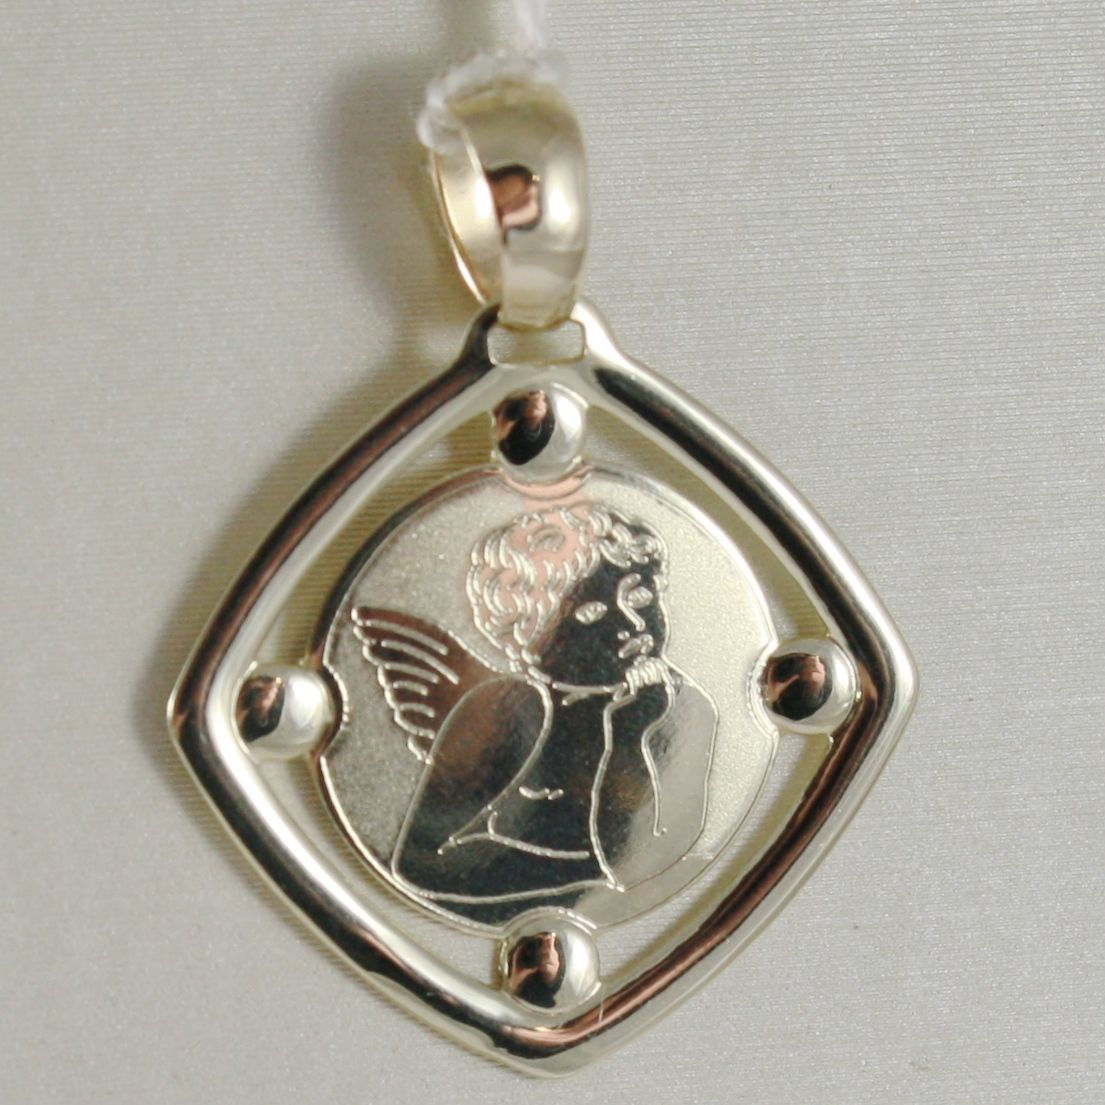 PENDENTIF MÉDAILLE OR JAUNE 375 9K, ANGE TUTEUR LOSANGE, SATIN, MADE IN ITALY